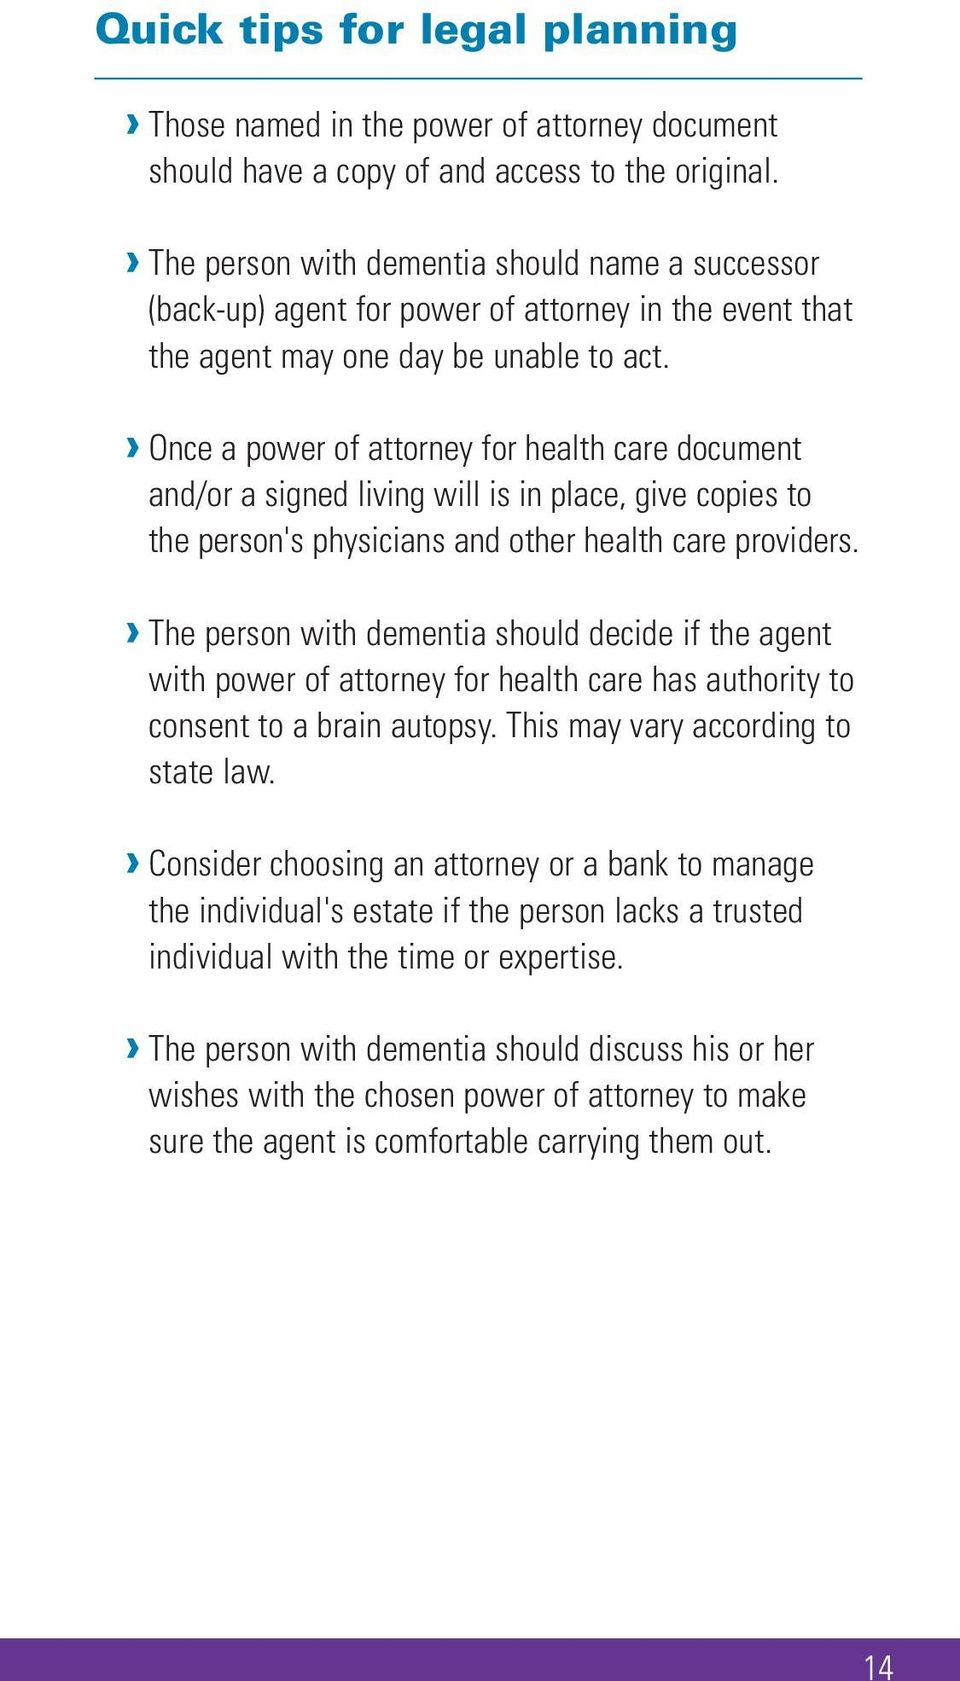 Once a power of attorney for health care document and/or a signed living will is in place, give copies to the person's physicians and other health care providers.